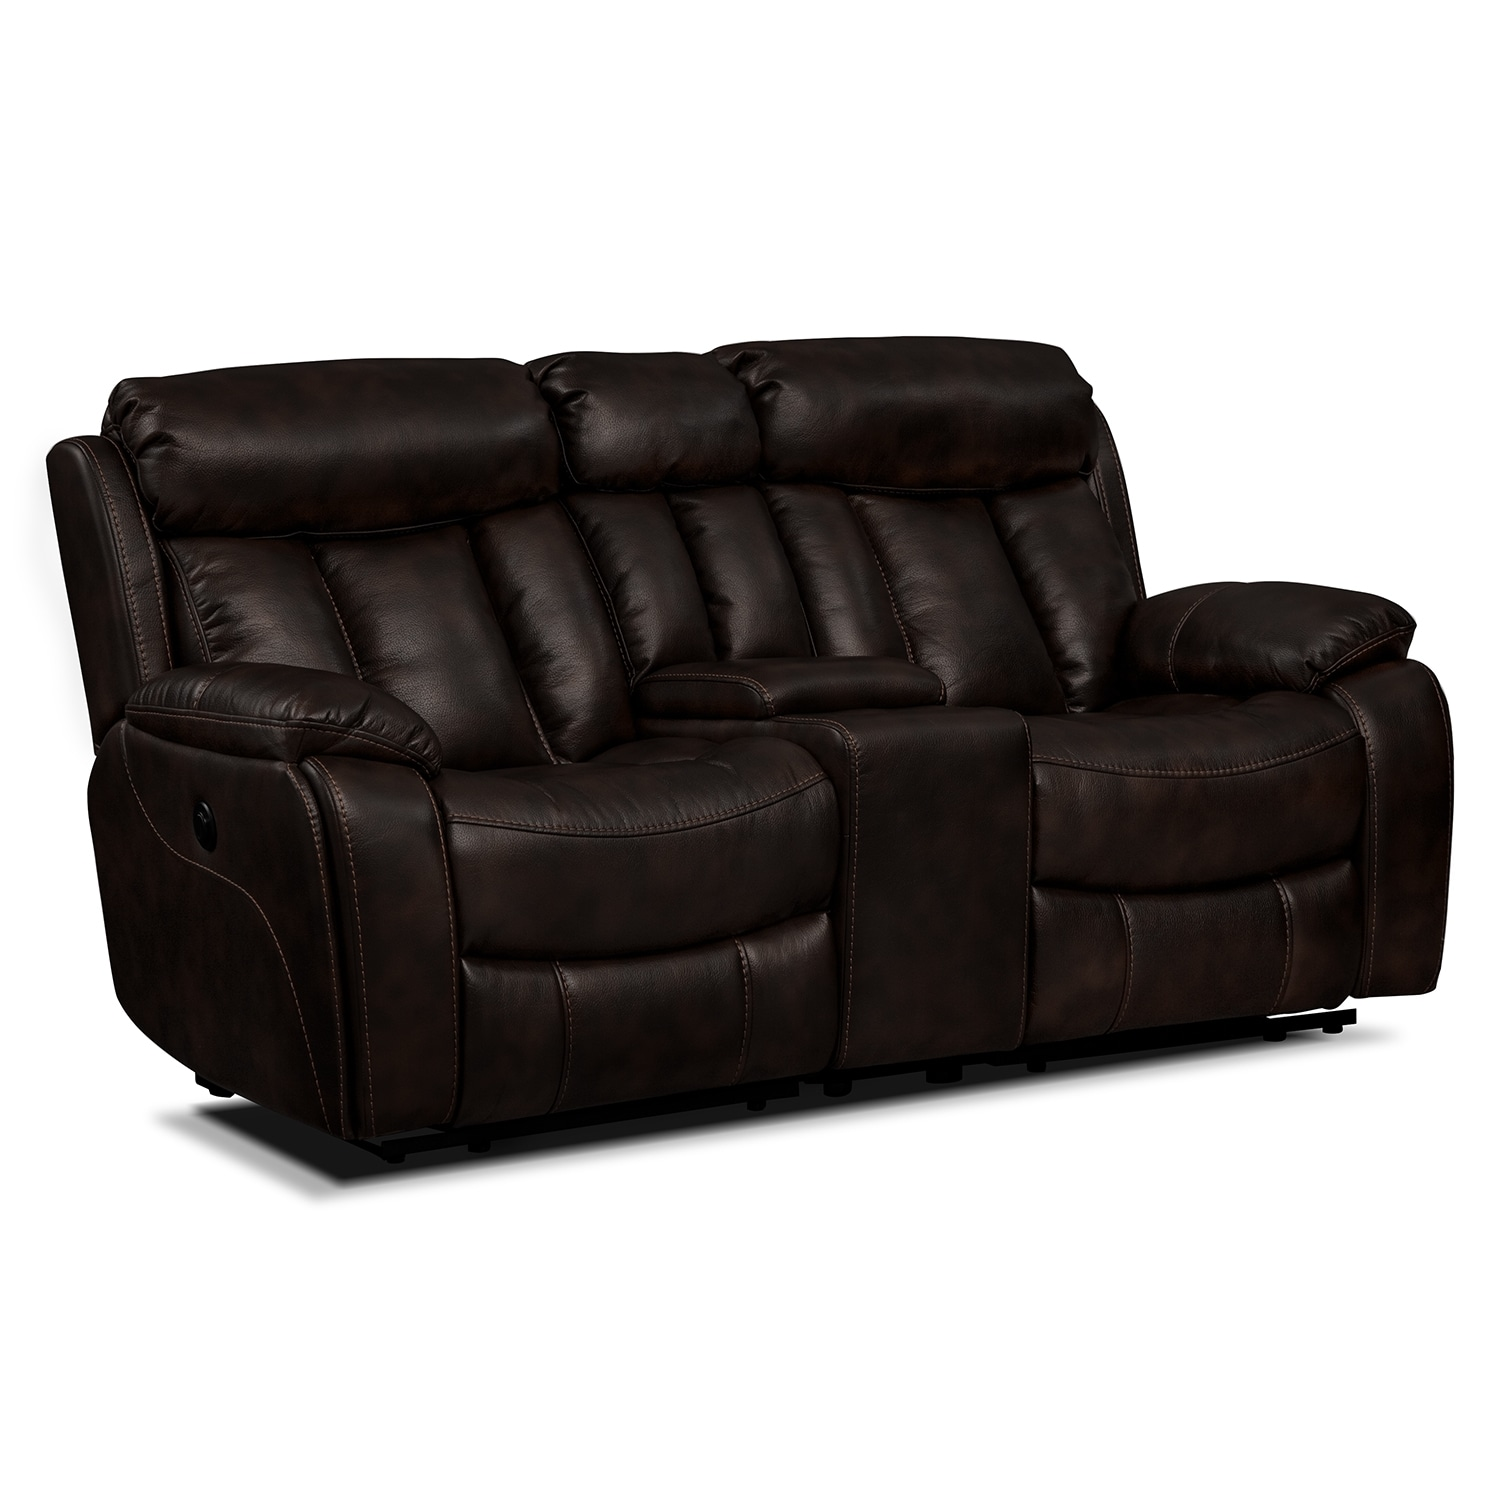 Living Room Furniture - Diablo Power Reclining Loveseat